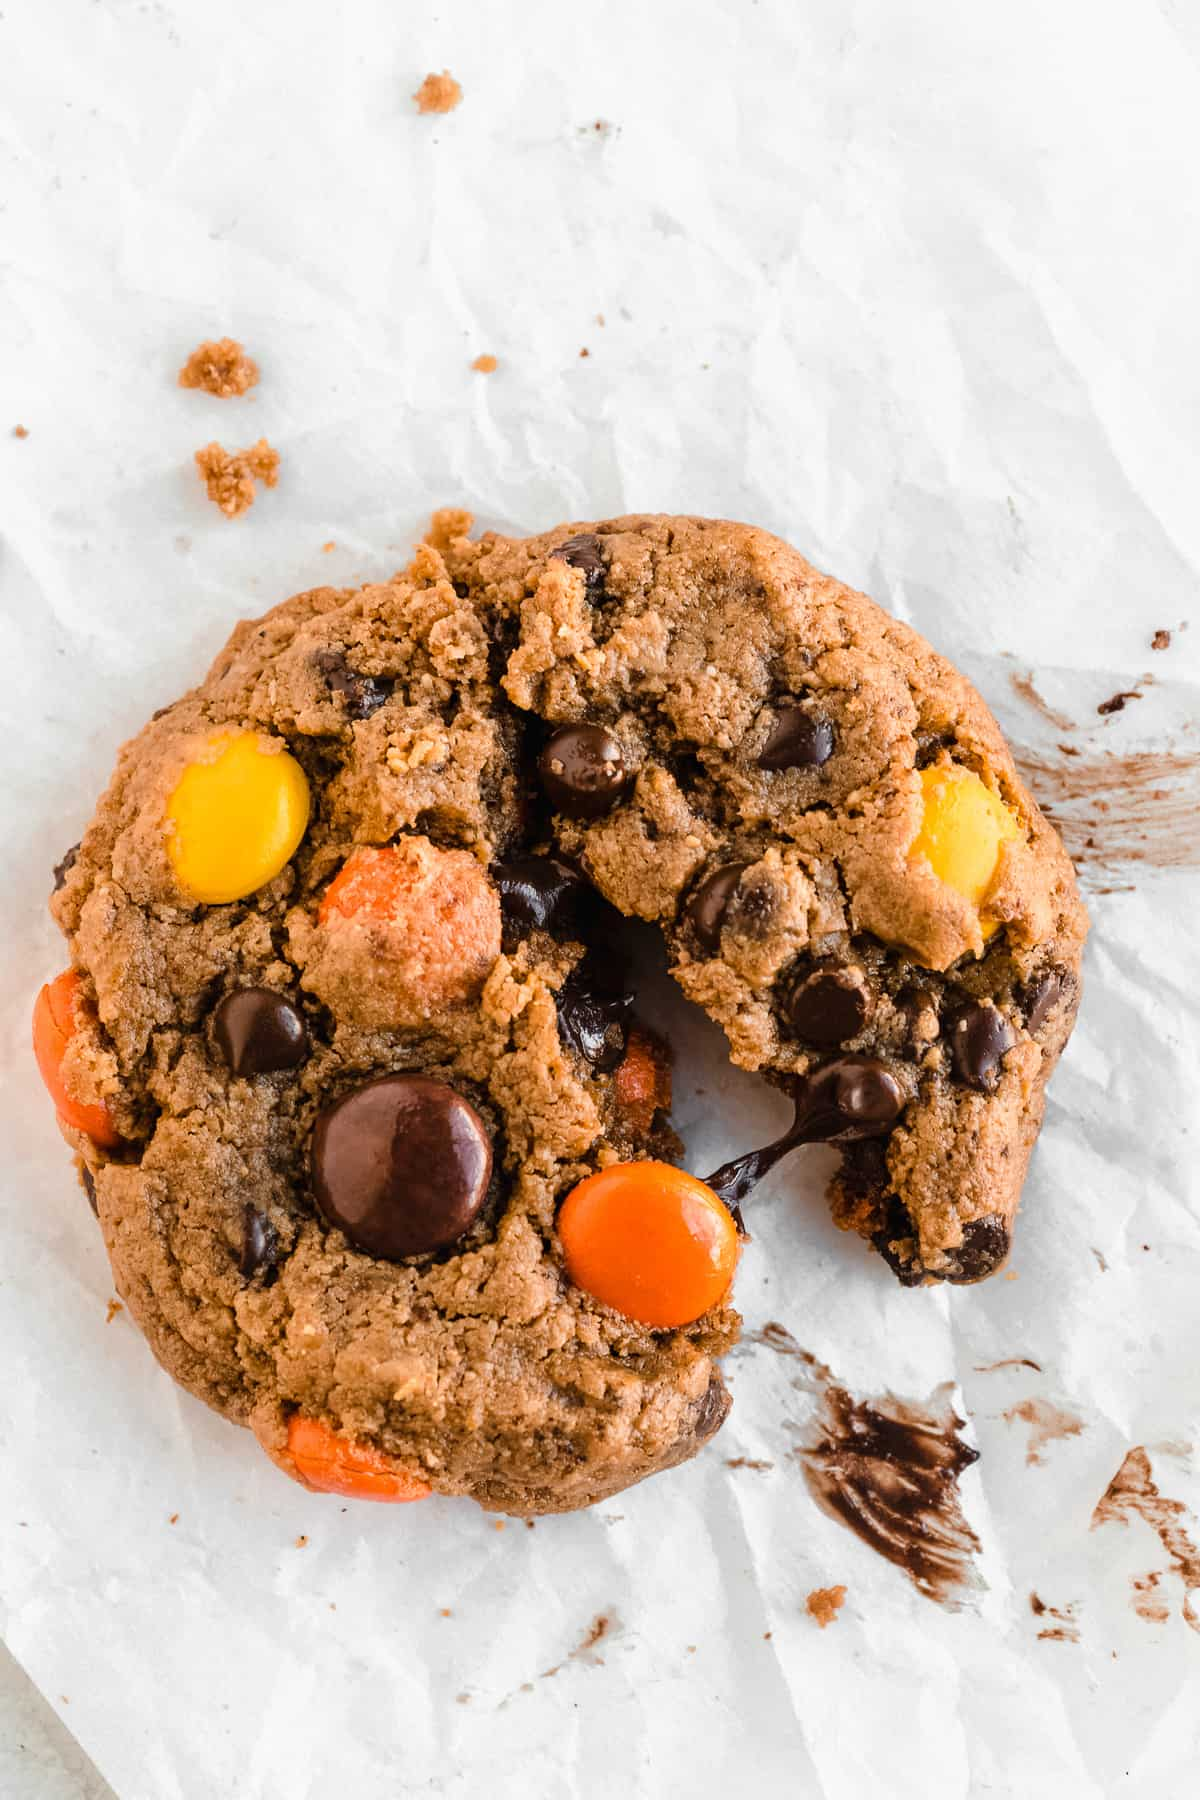 Cookie pulled apart with chocolate in the middle and Reece's pieces on top on a white backdrop.